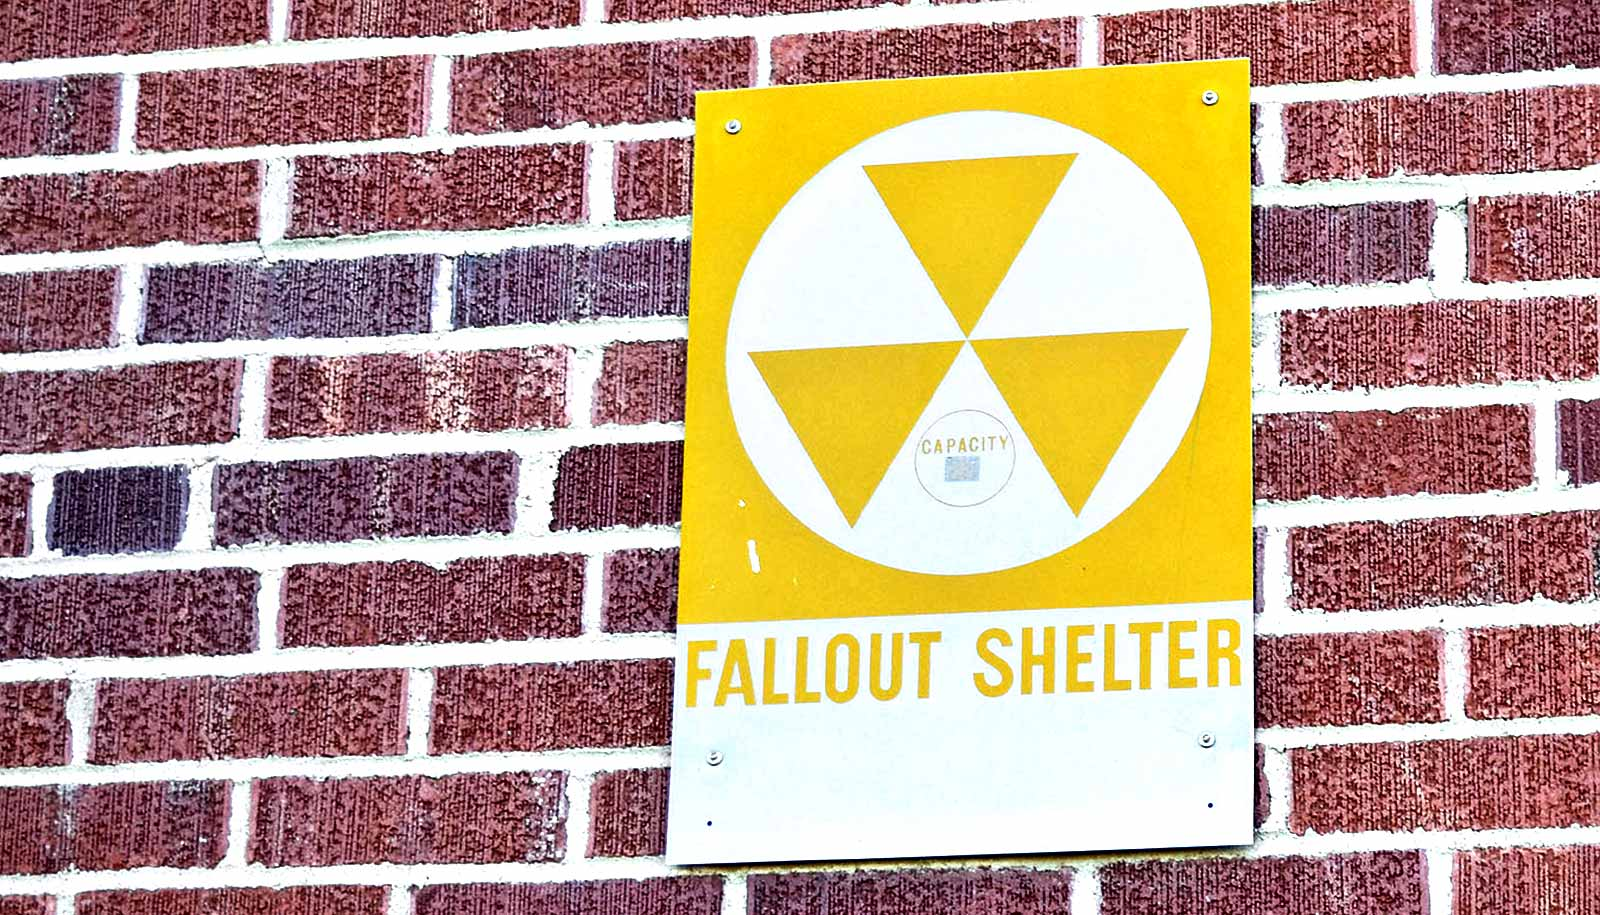 Bricks can become 'cameras' to locate nuclear material - Futurity: Research News